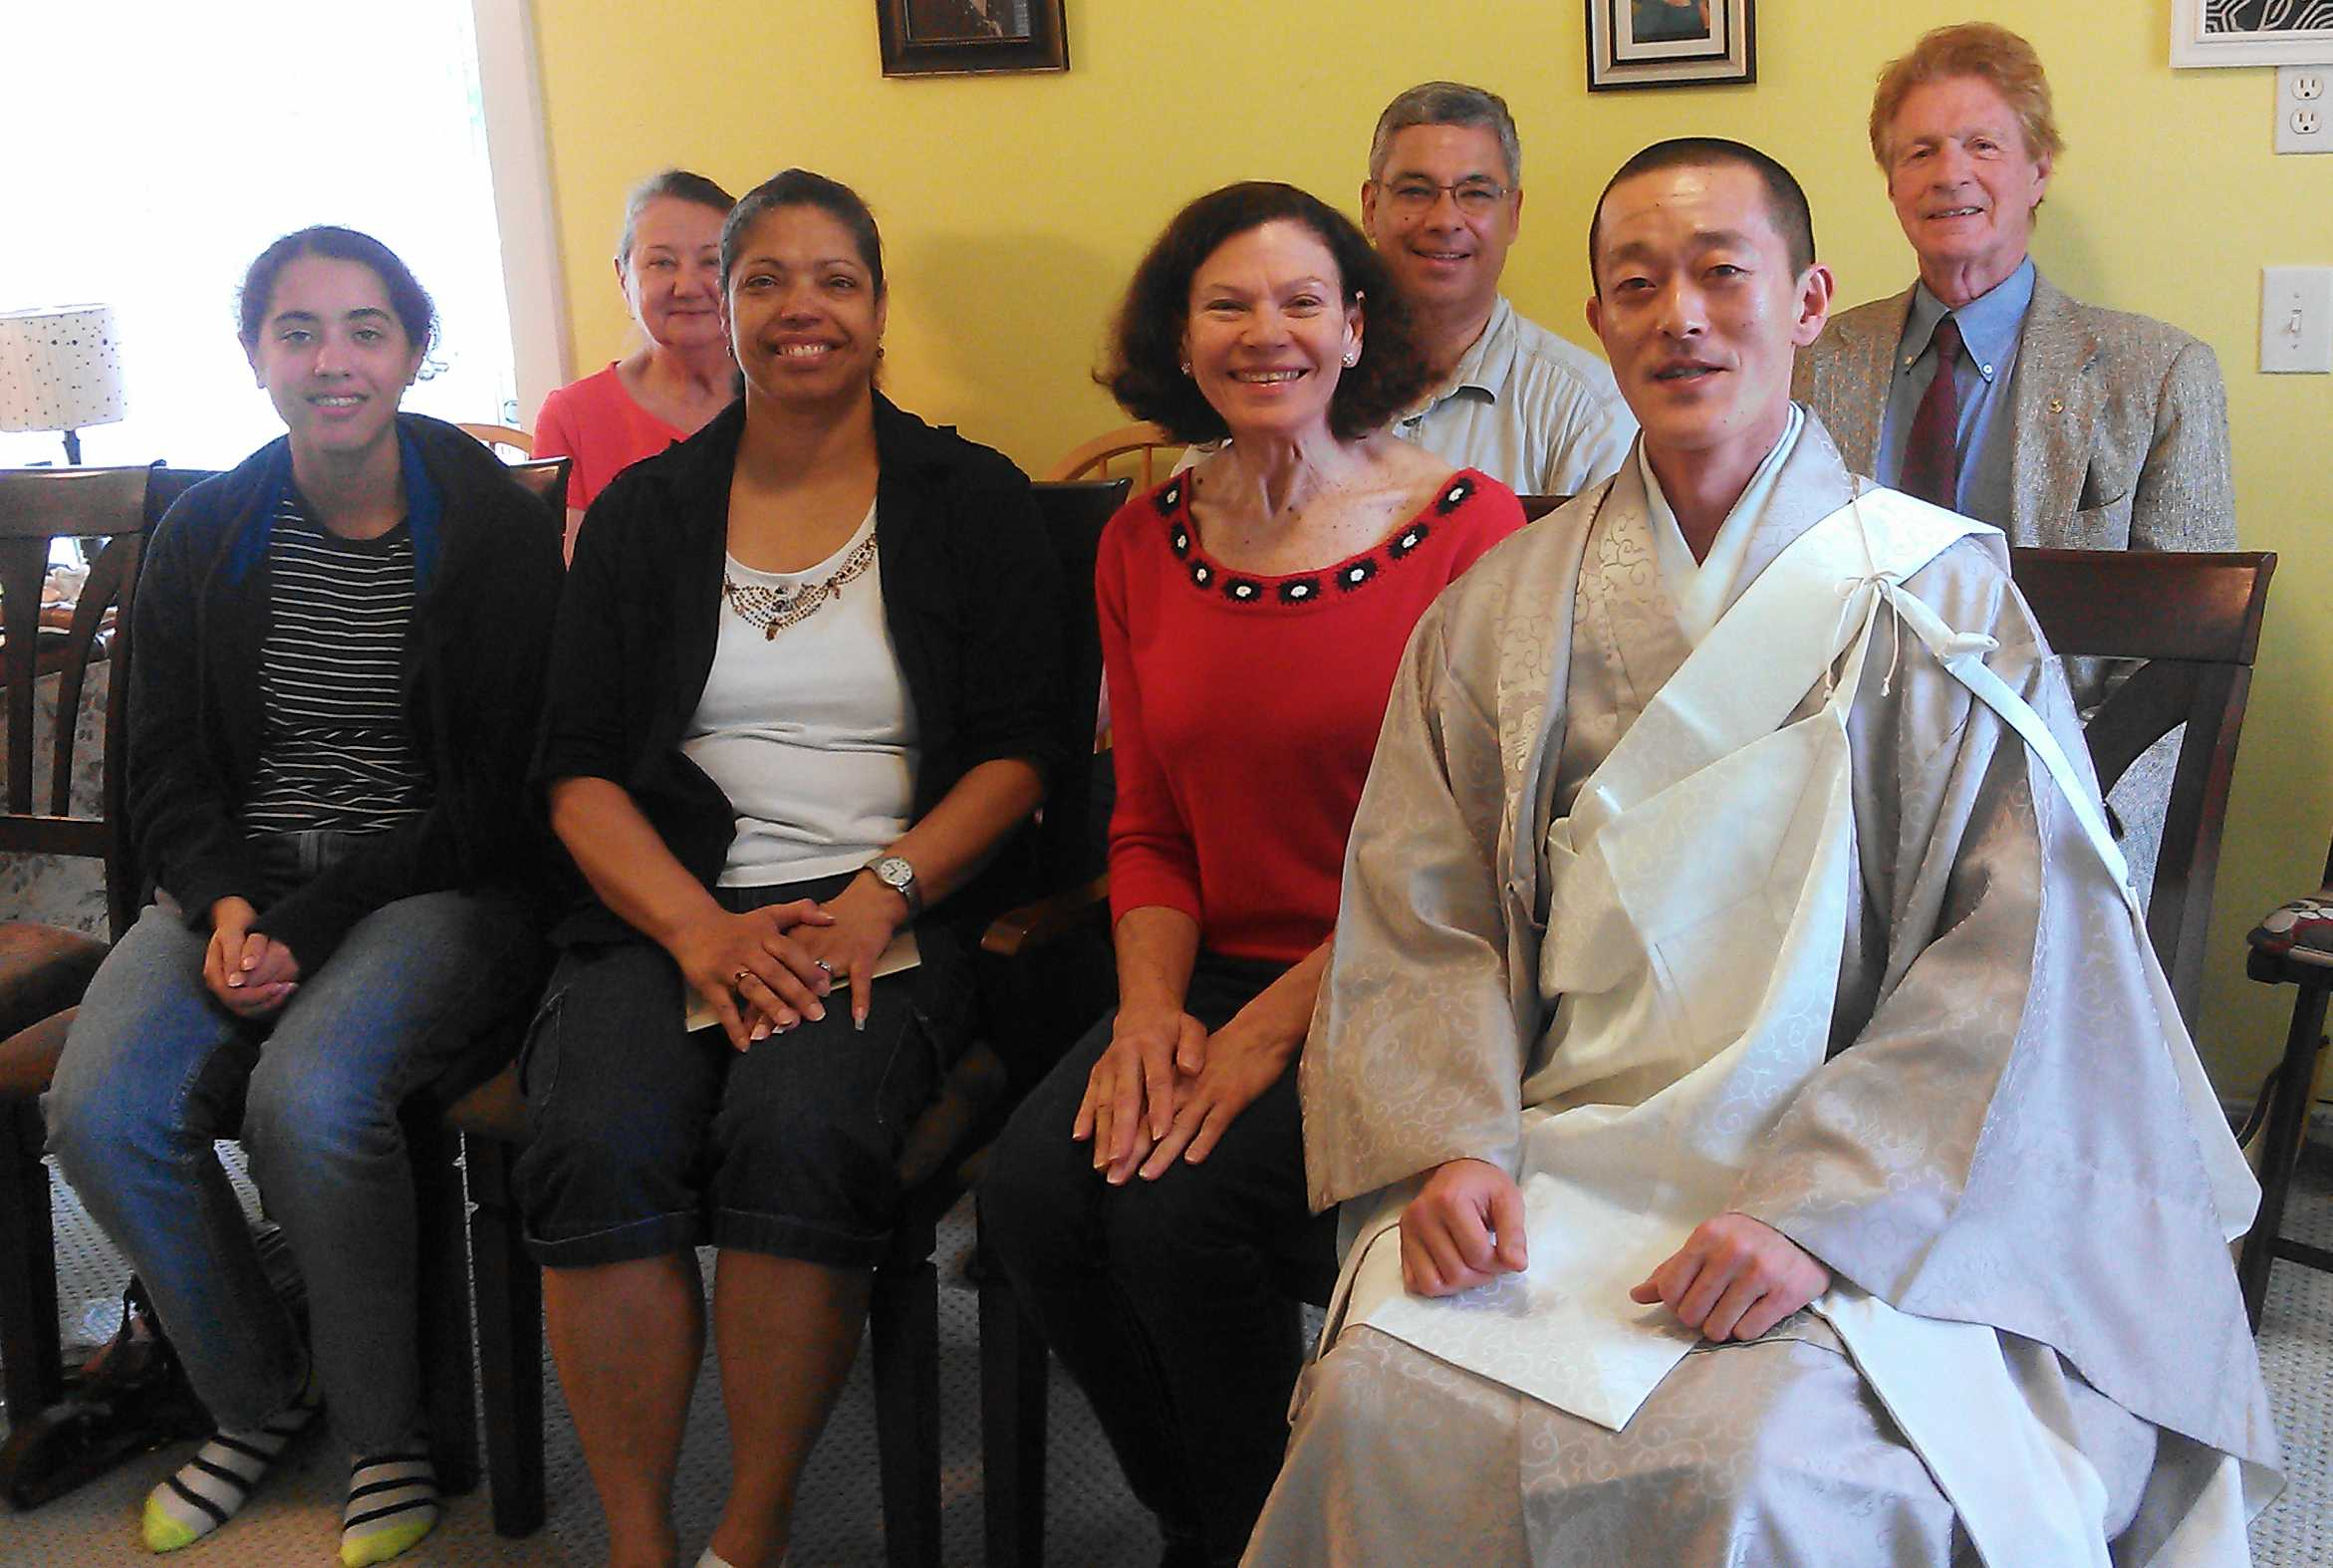 Nichiren Shoshu priest encourages the spread of faith through family